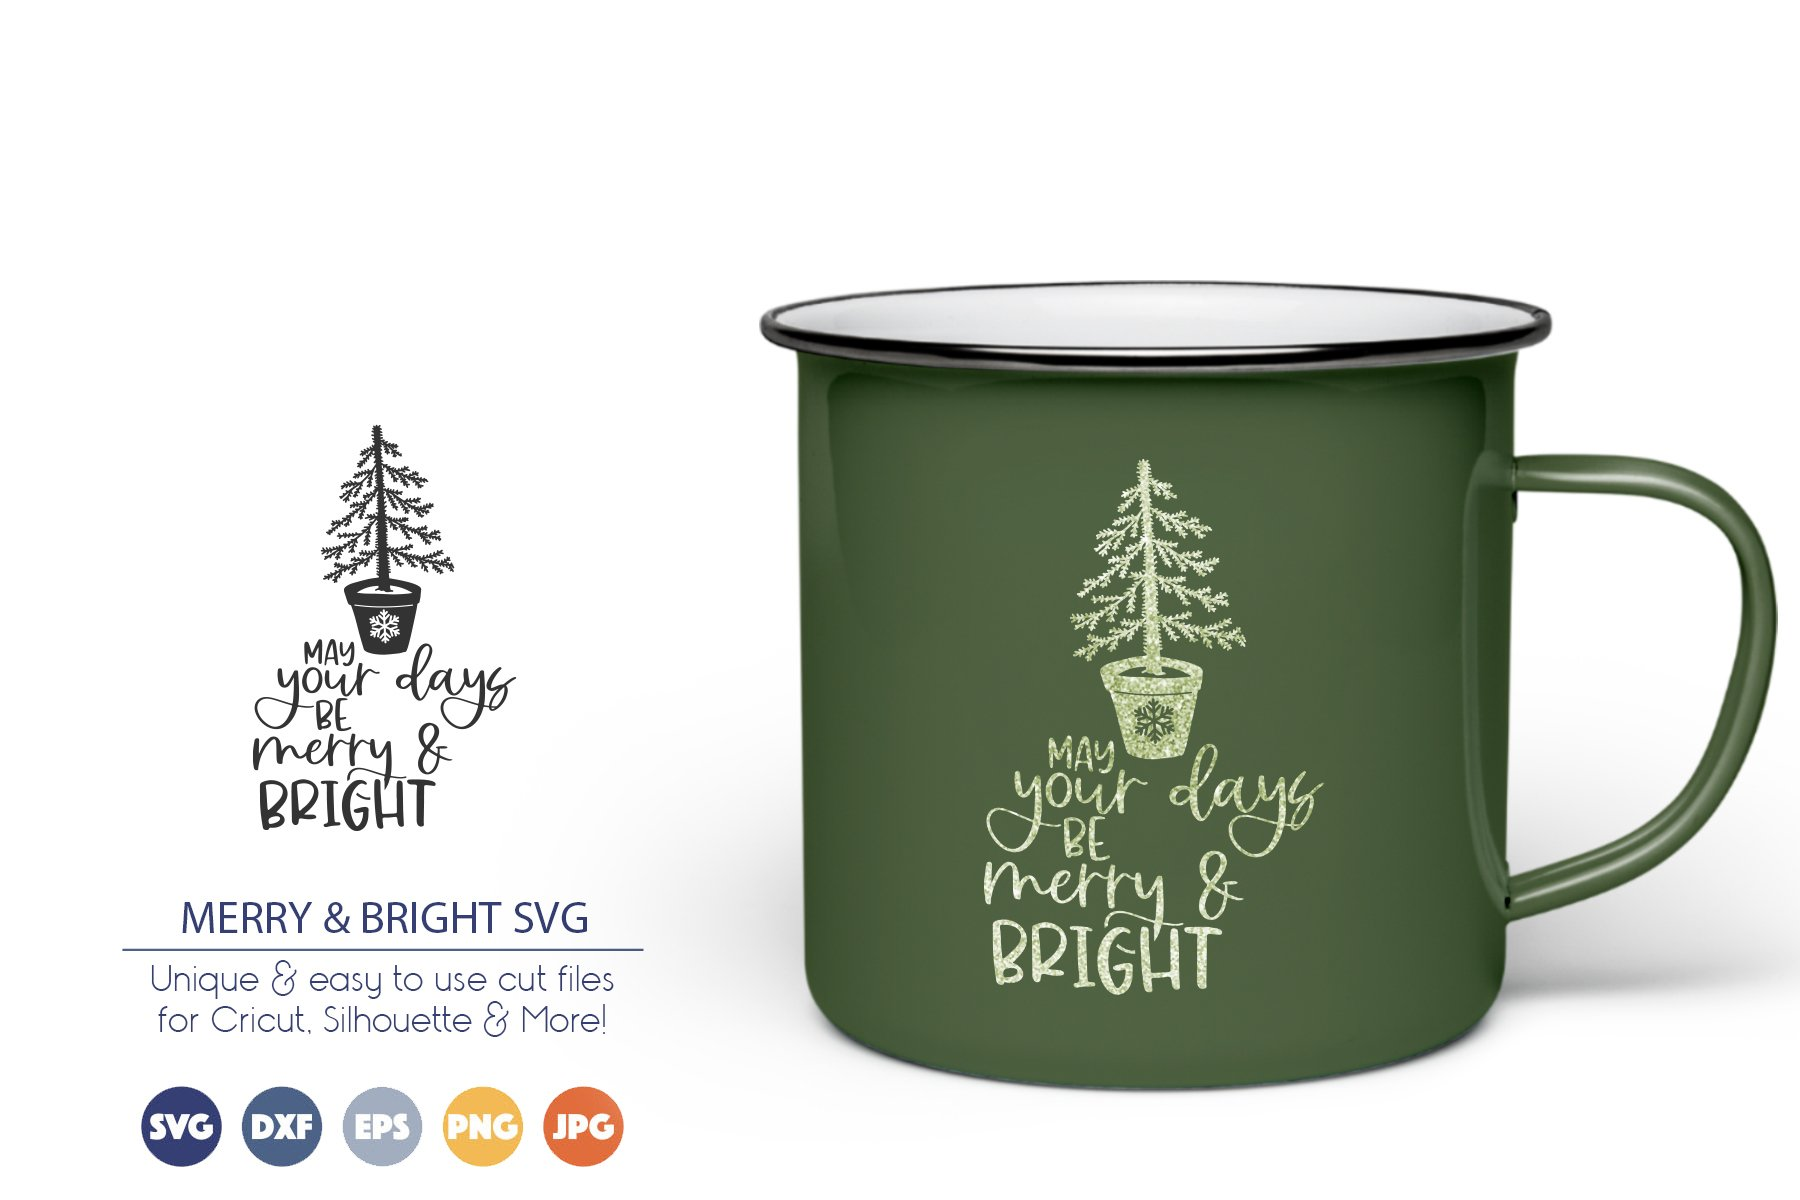 May Your Days Be Merry & Bright SVG | Christmas Tree SVG example image 1